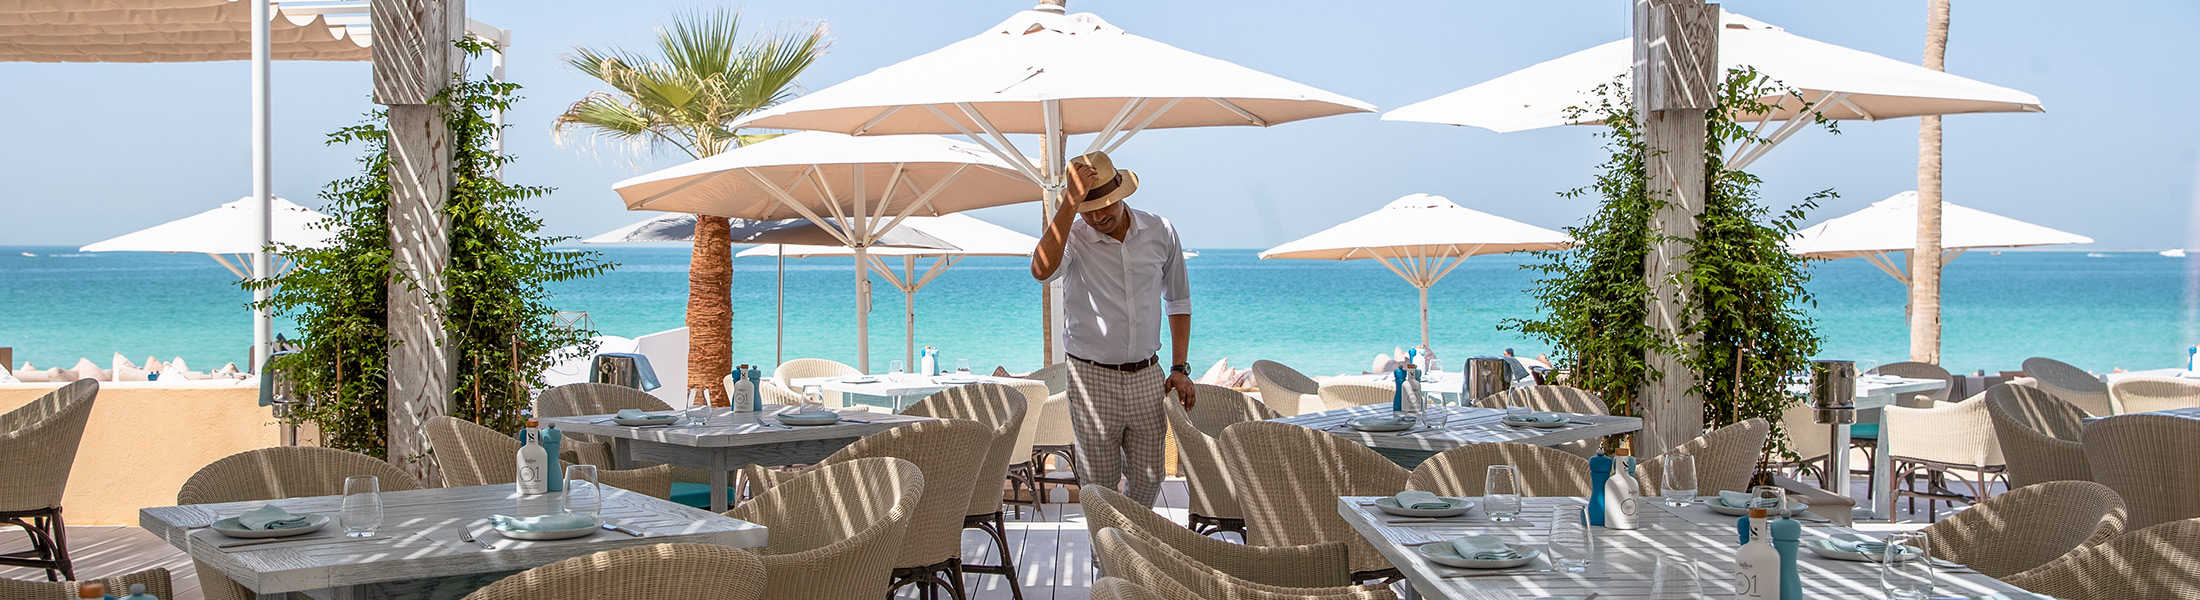 Man at Himmers Restaurant at Jumeirah Mina A'Salam